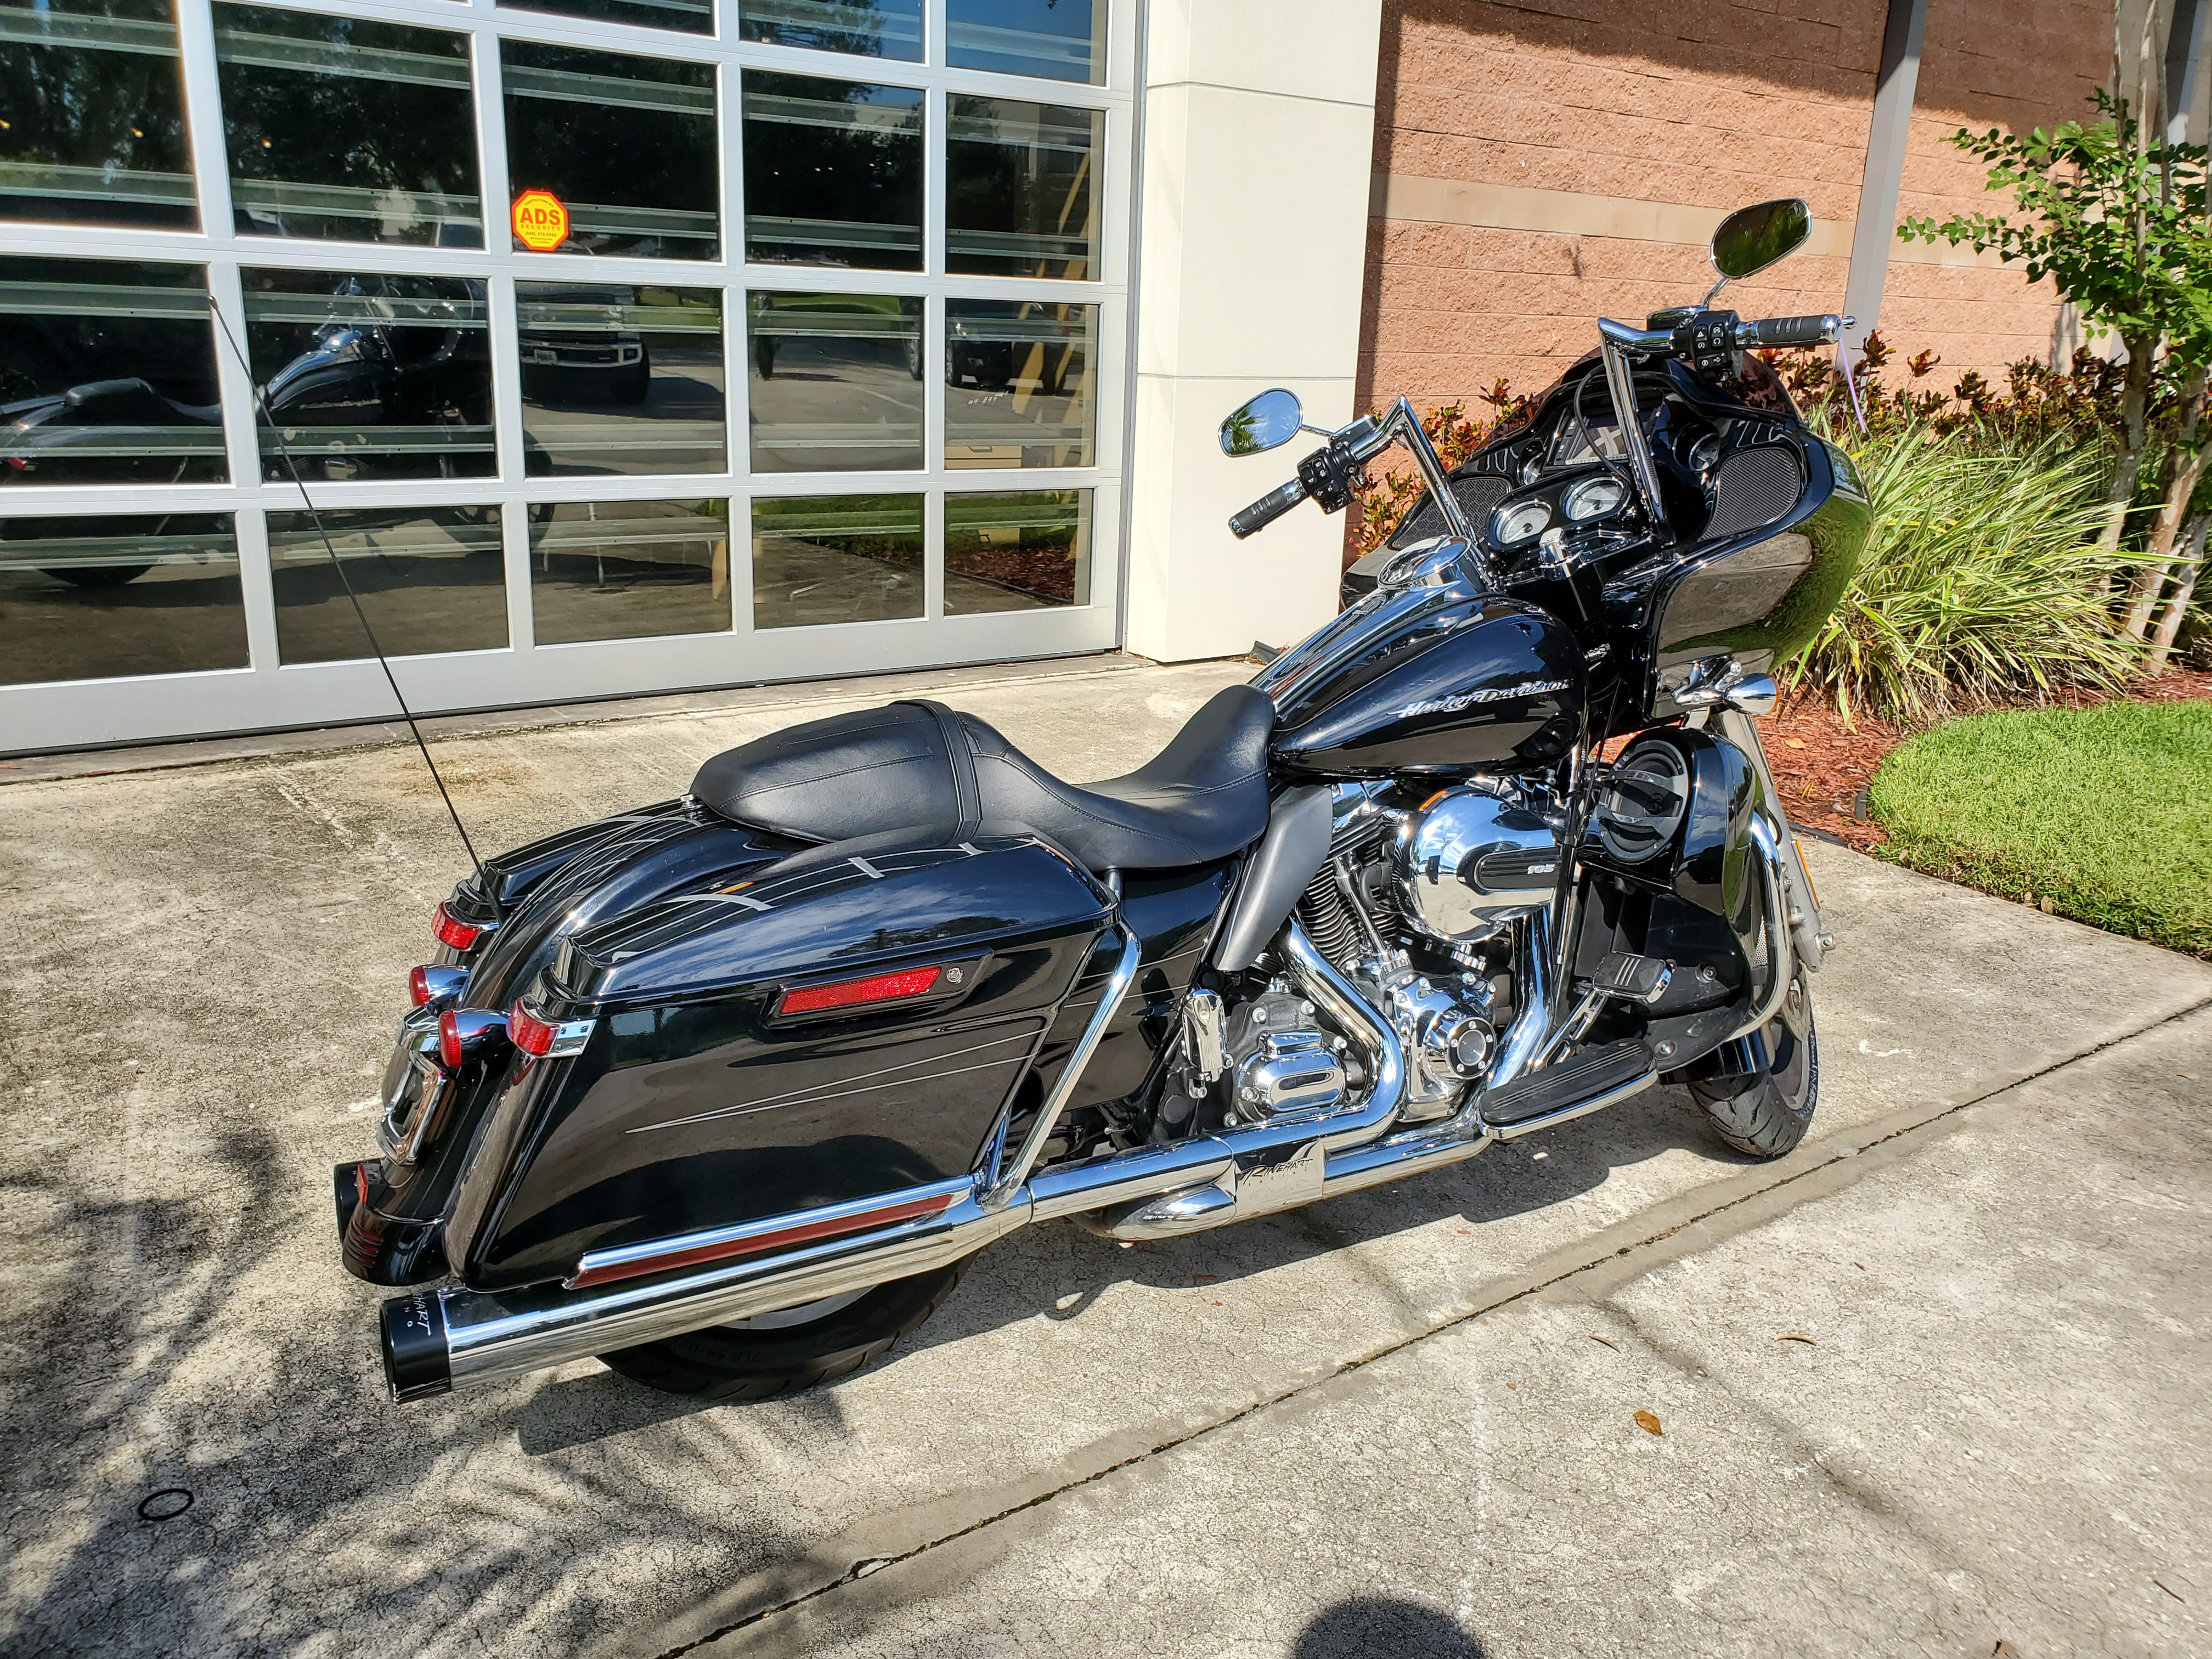 Pre-Owned 2016 Harley-Davidson Road Glide Special